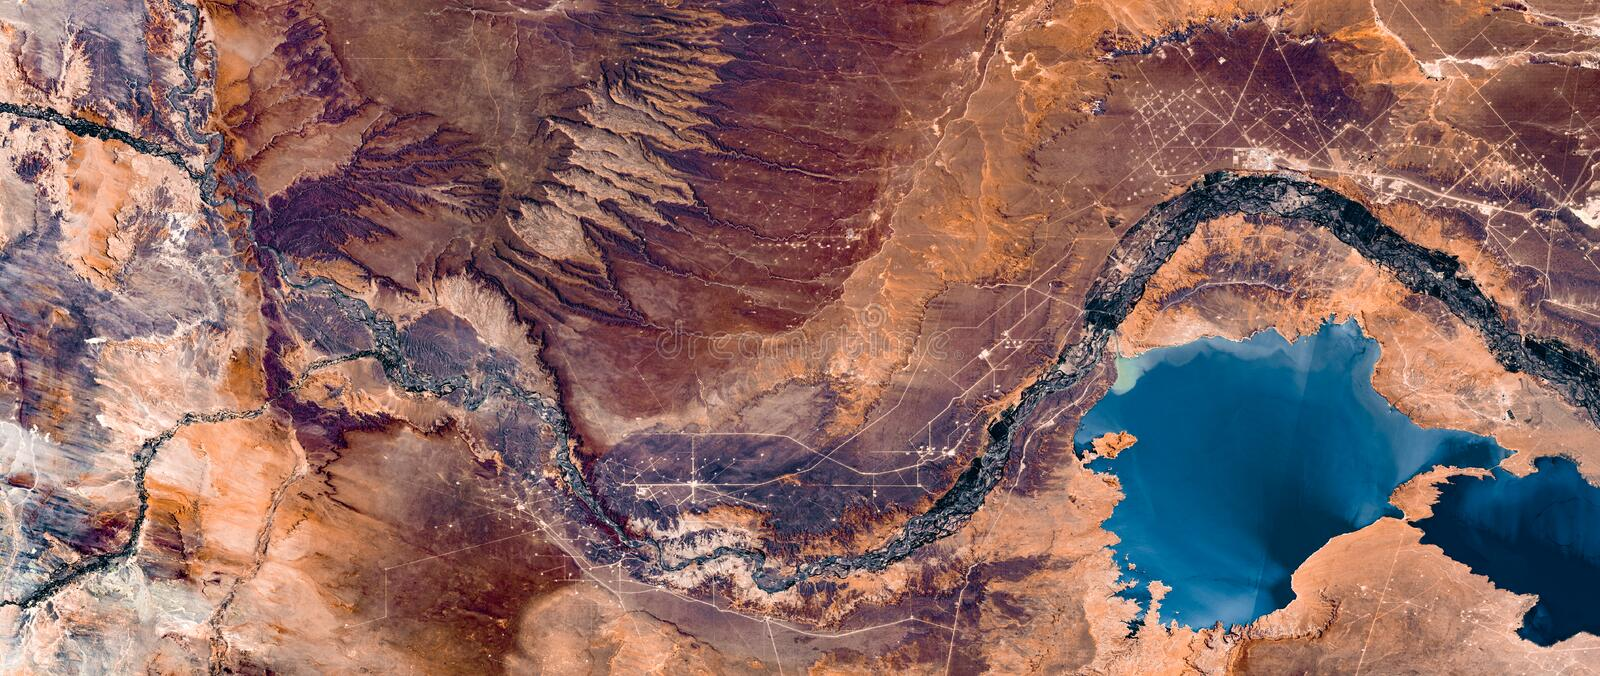 High resolution satellite image of river and Andes mountains from above, Neuquen, Argentina, natural background texture, aerial royalty free stock photo